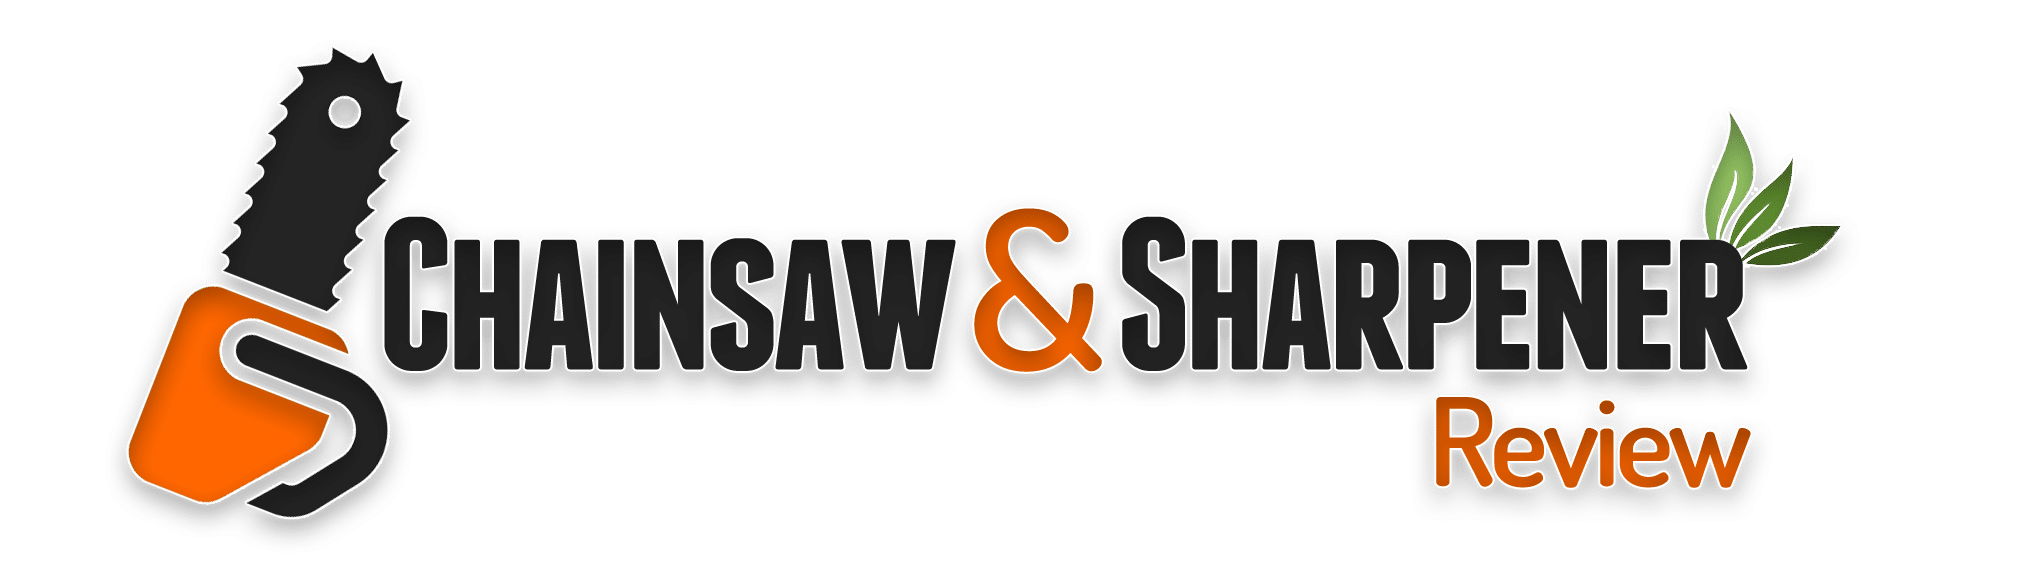 Chainsaw and Chainsaw Sharpener Reviews